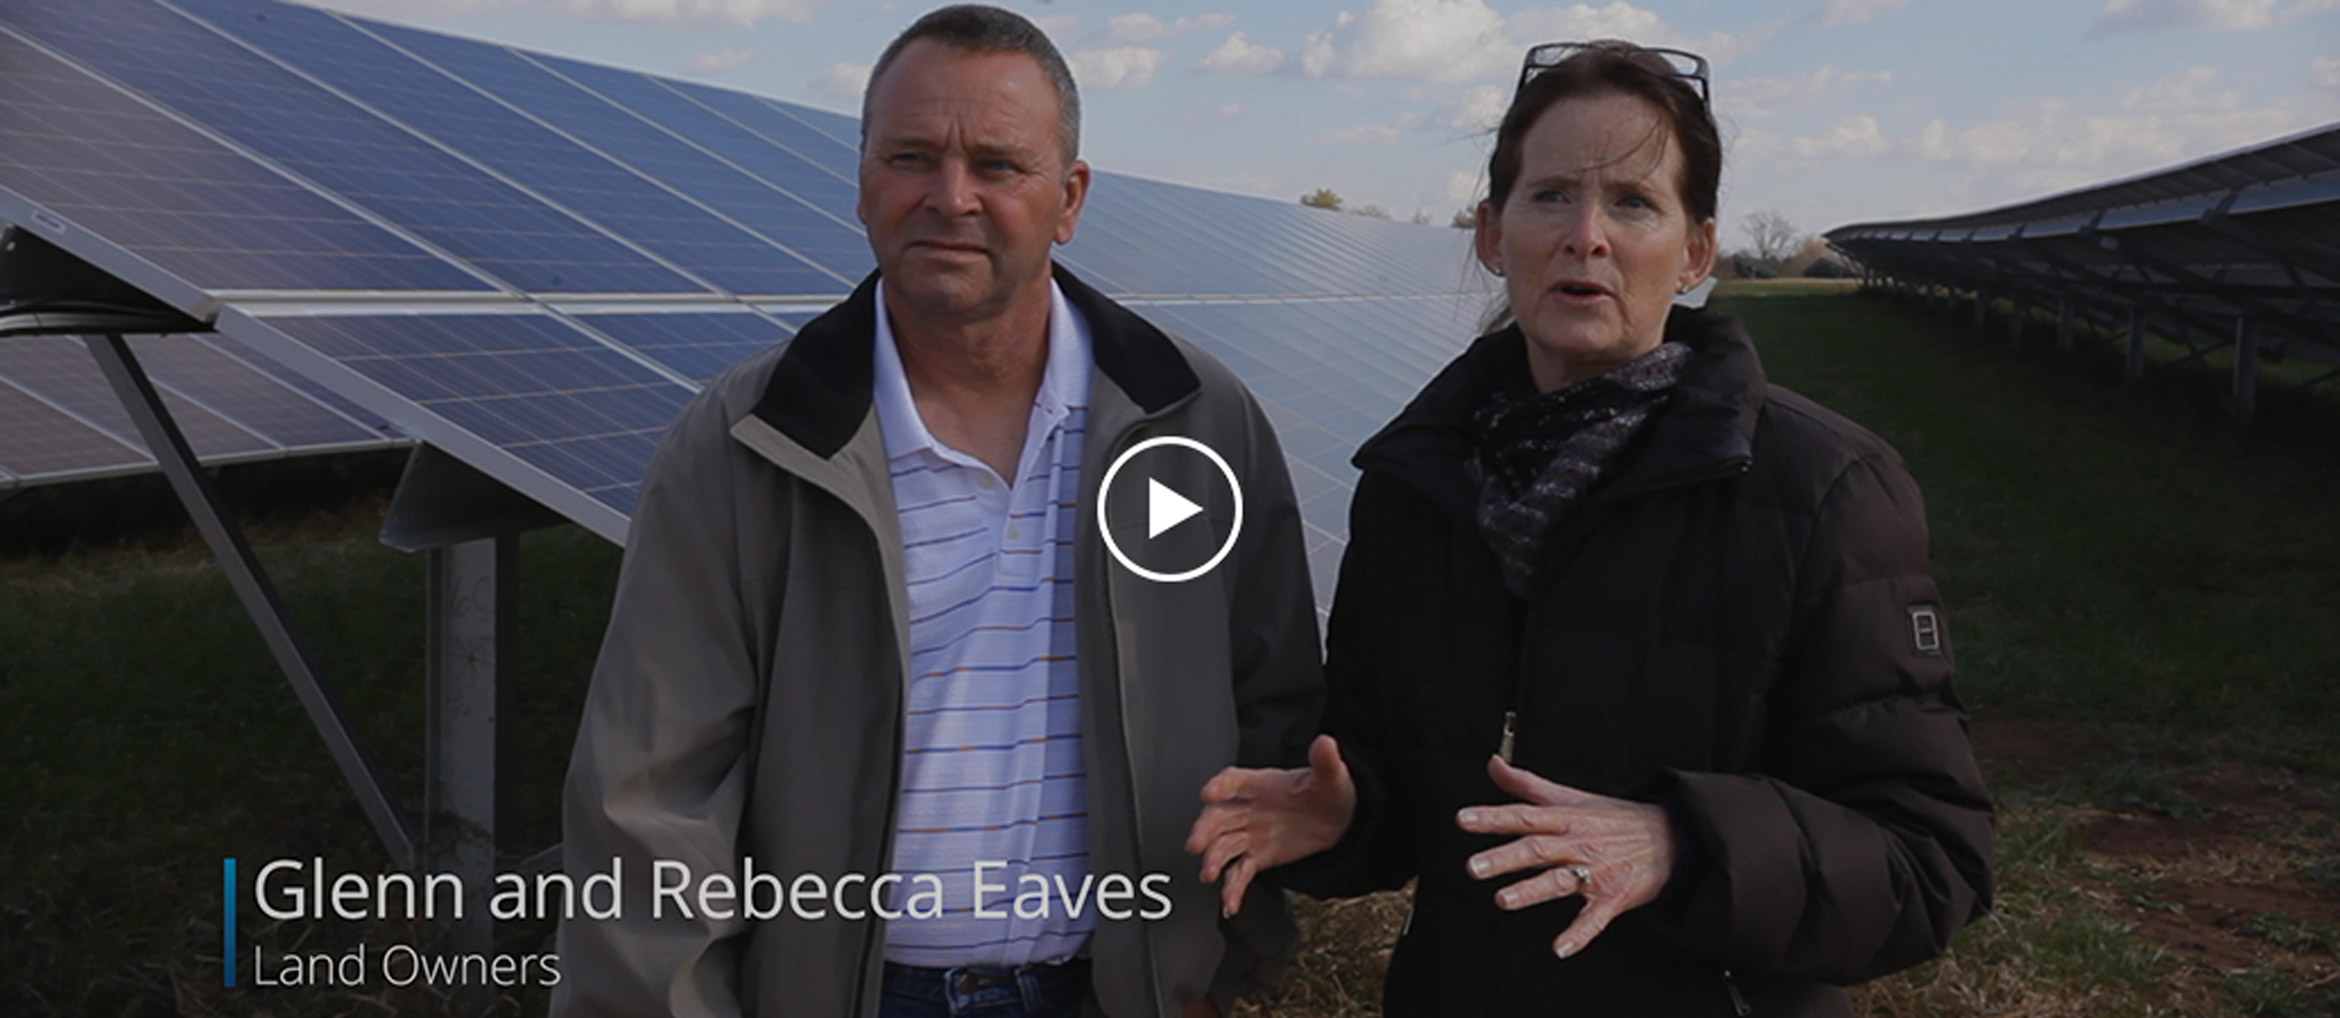 Overview video about solar company Cypress Creek Renewables